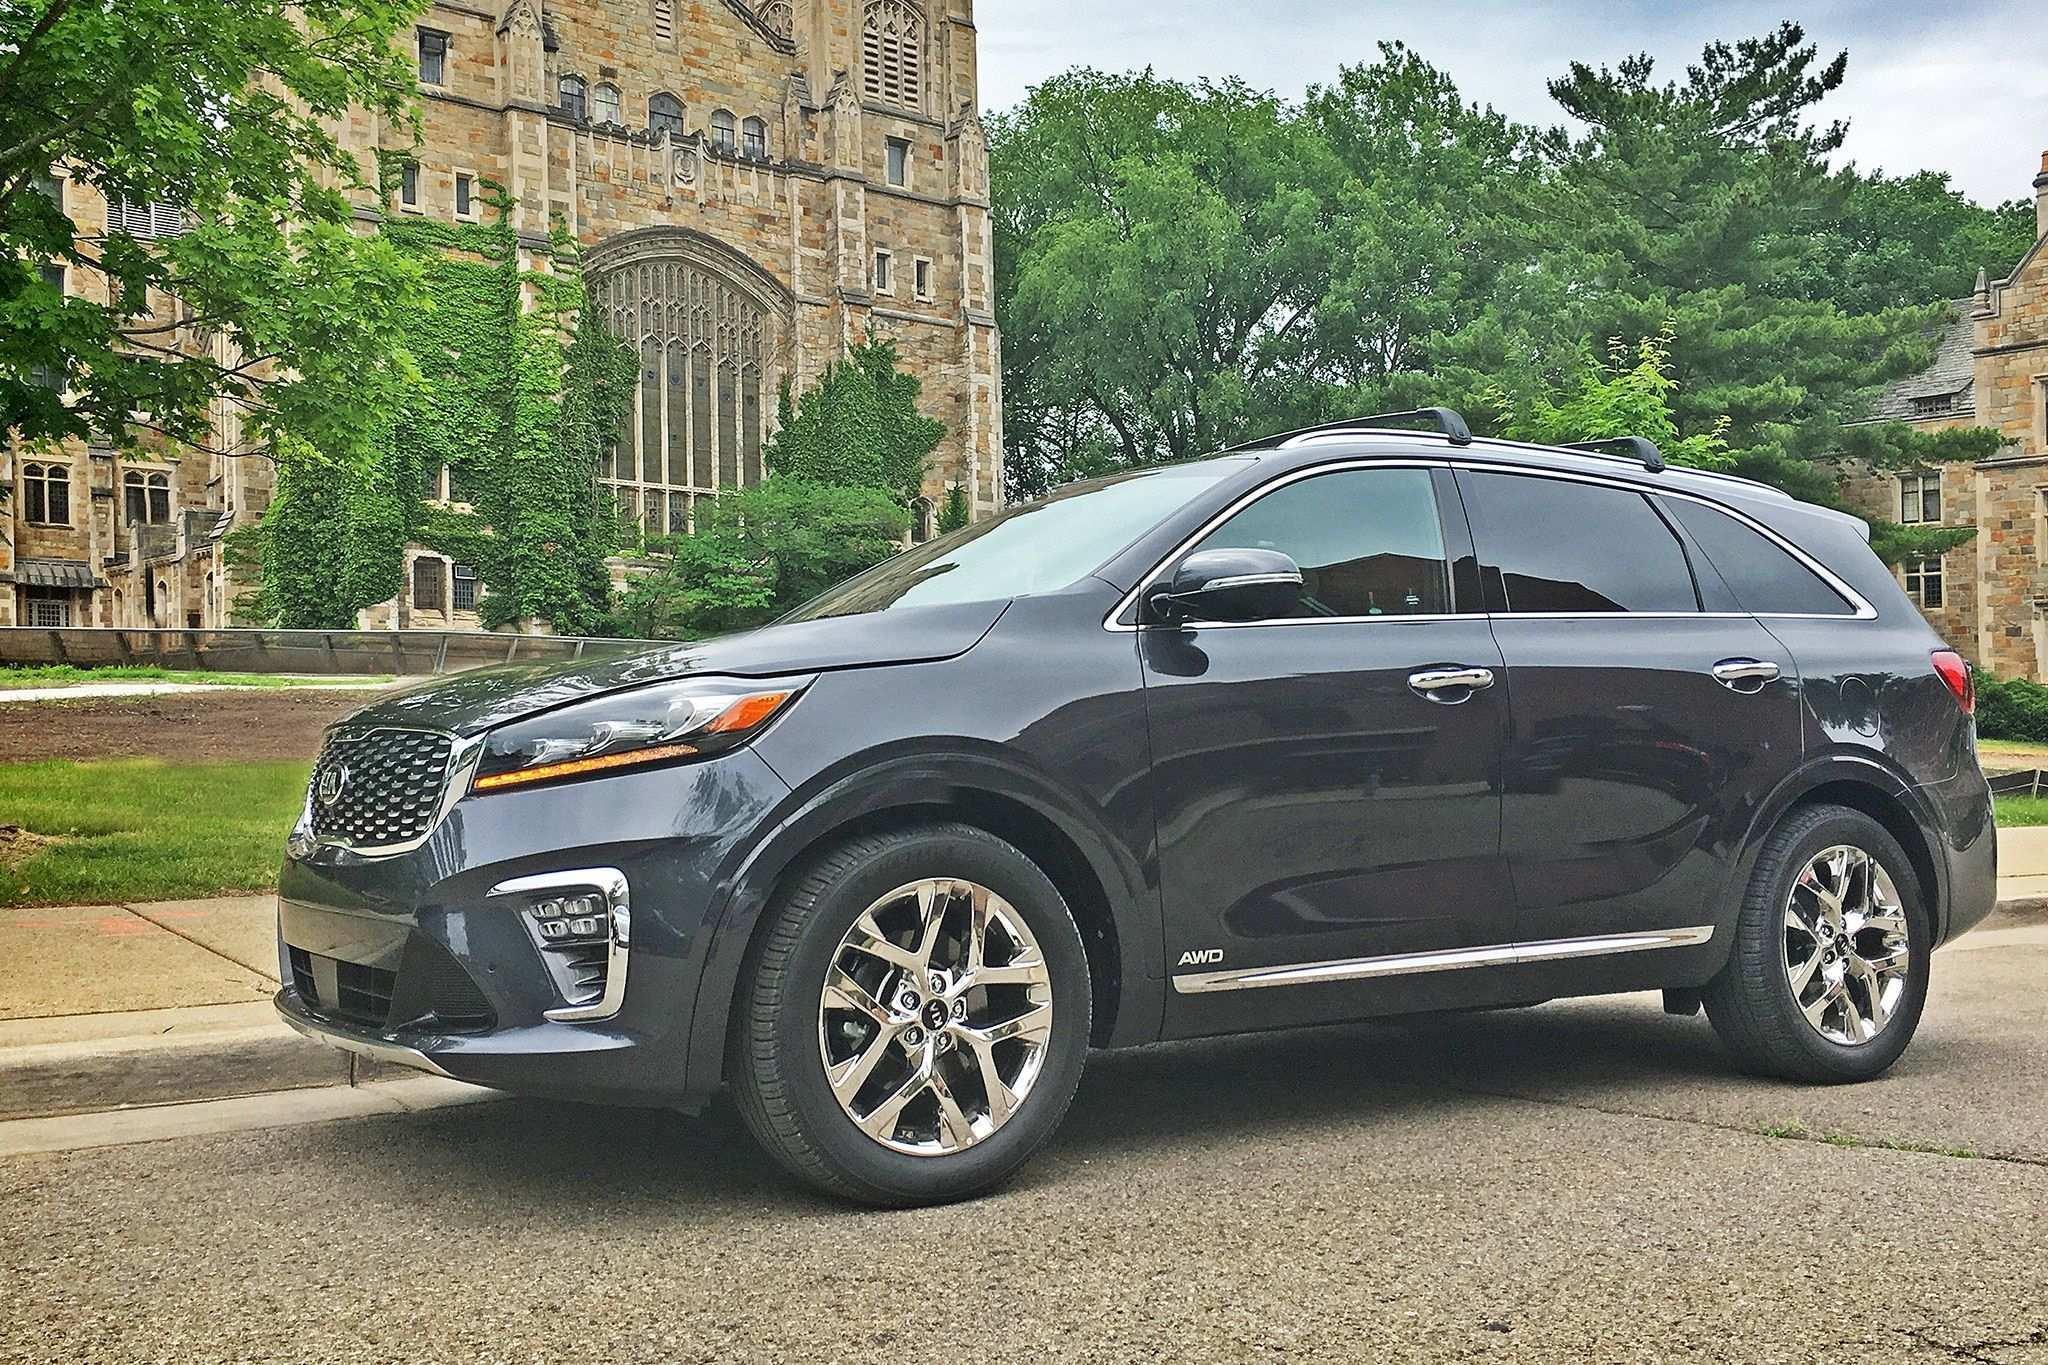 62 A 2019 Kia Sorento Owners Manual Exterior And Interior